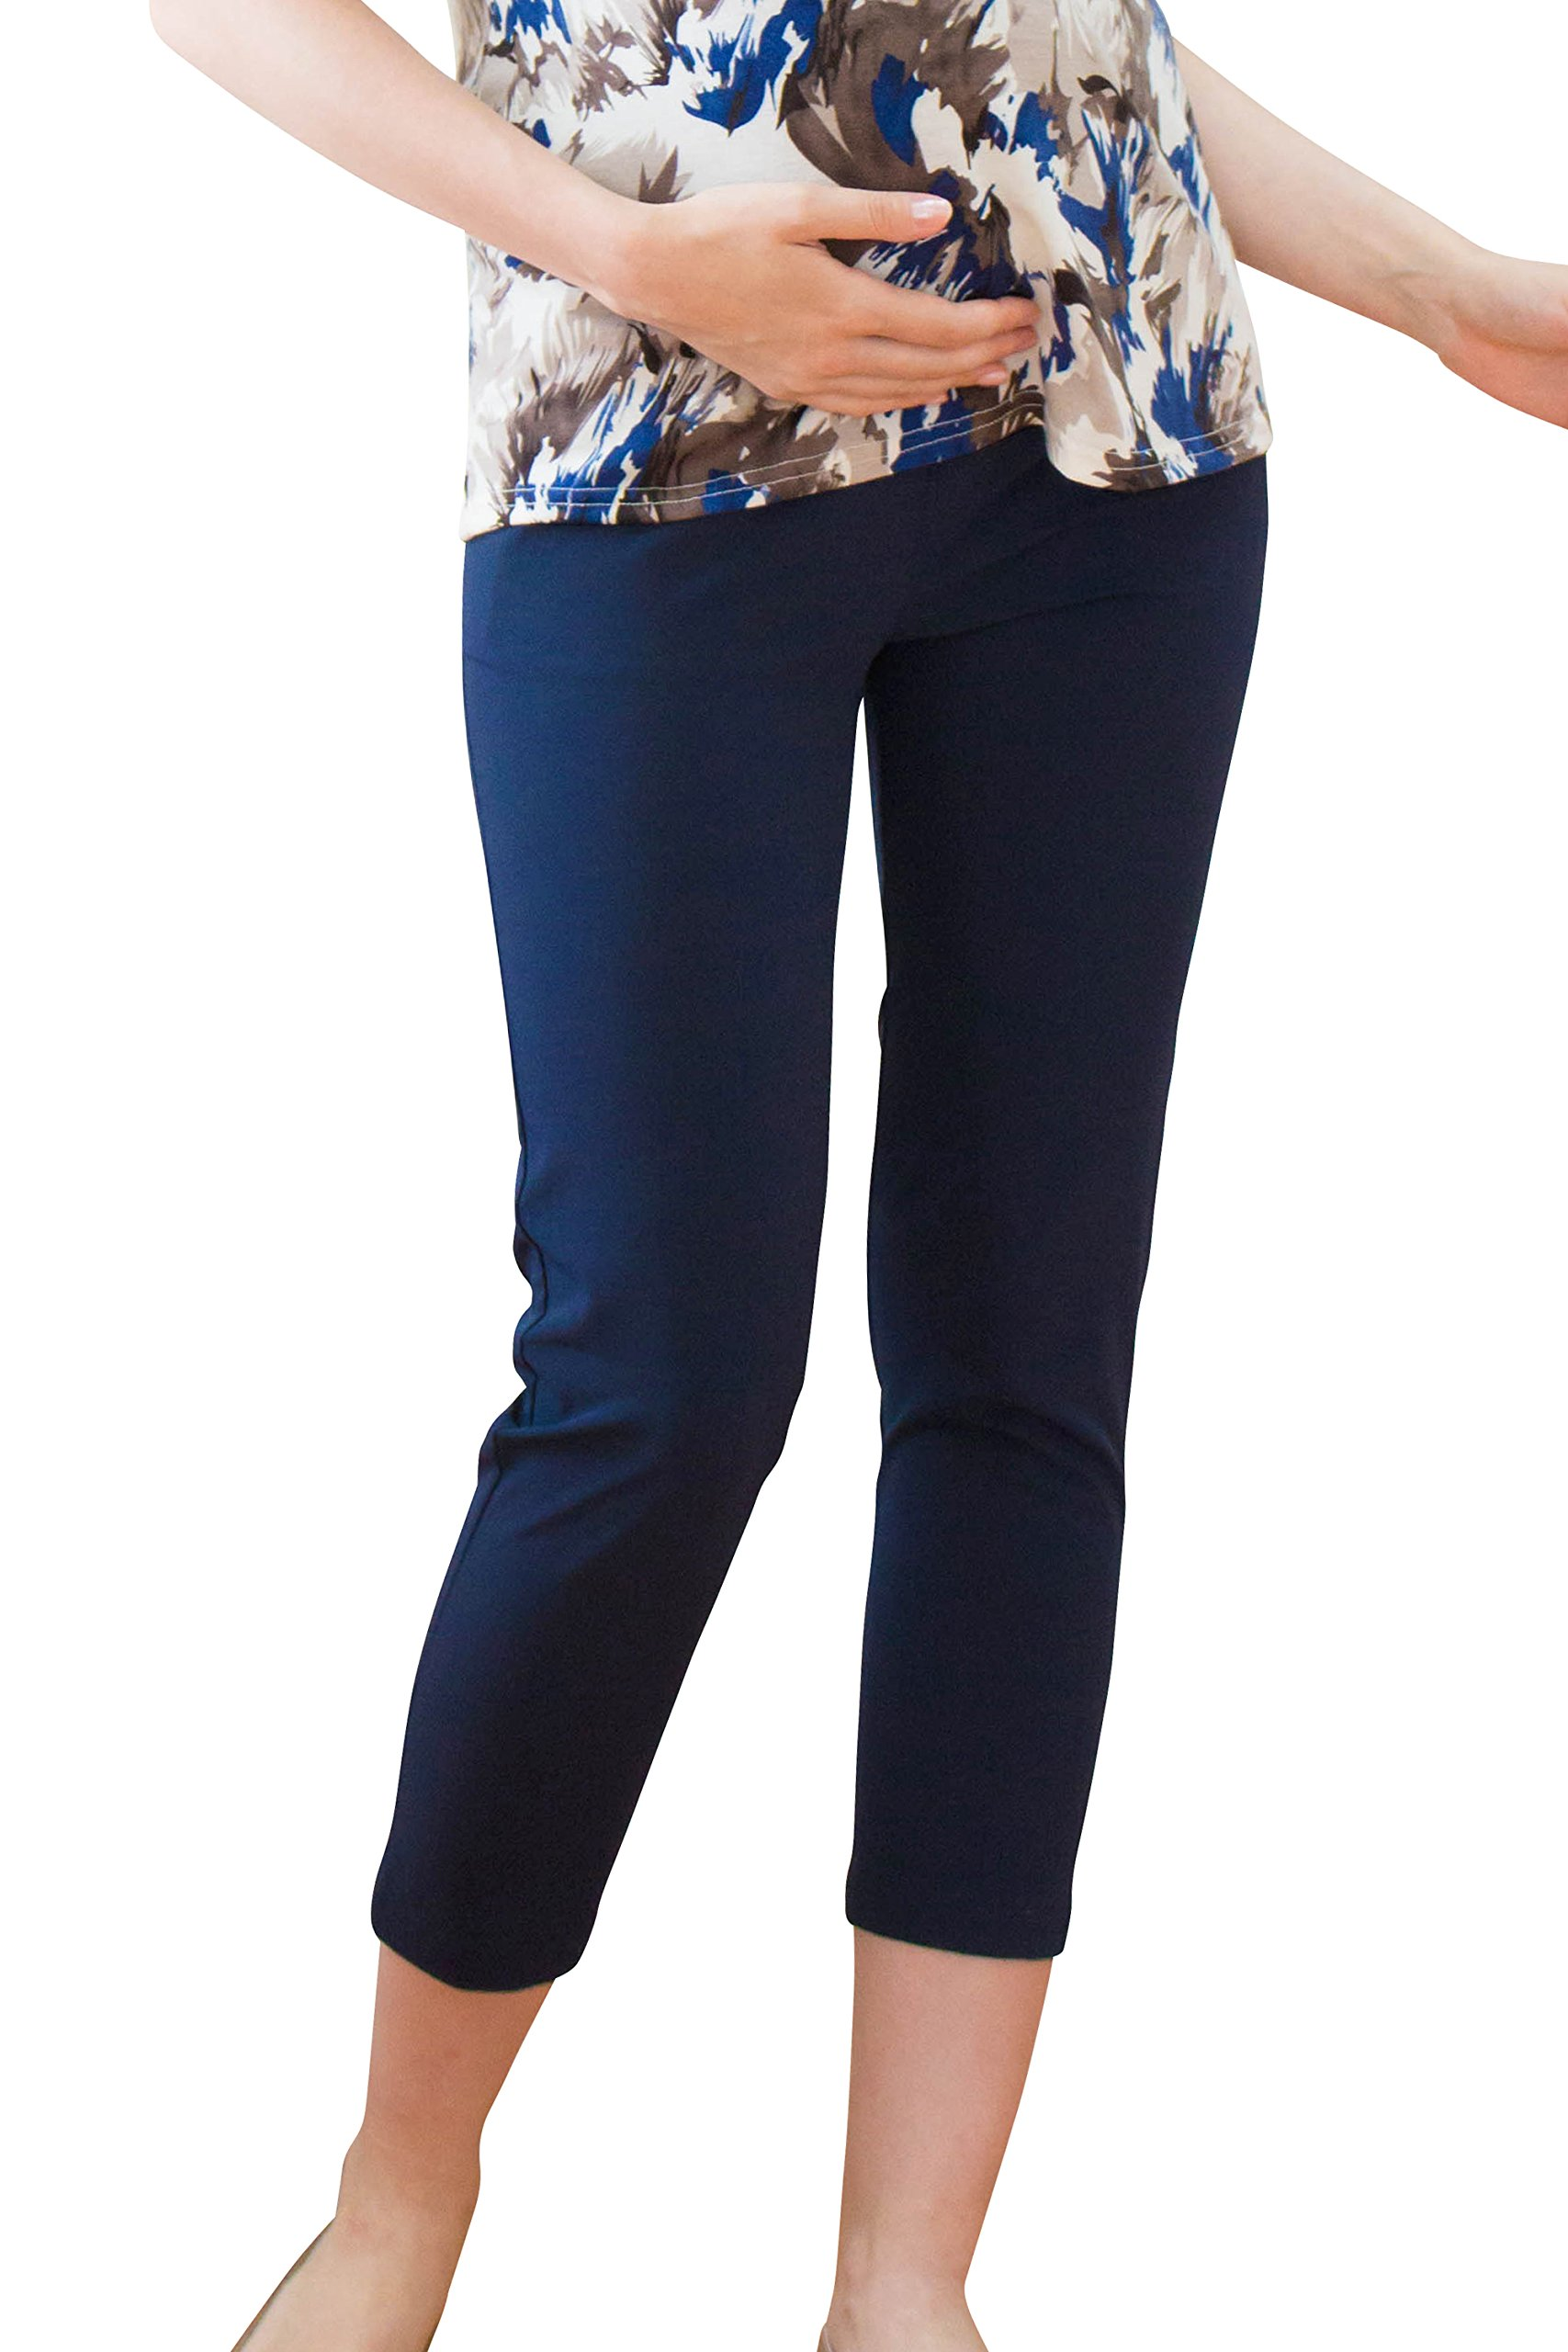 Sweet Mommy Maternity Rayon Tapered Pants Navy, M